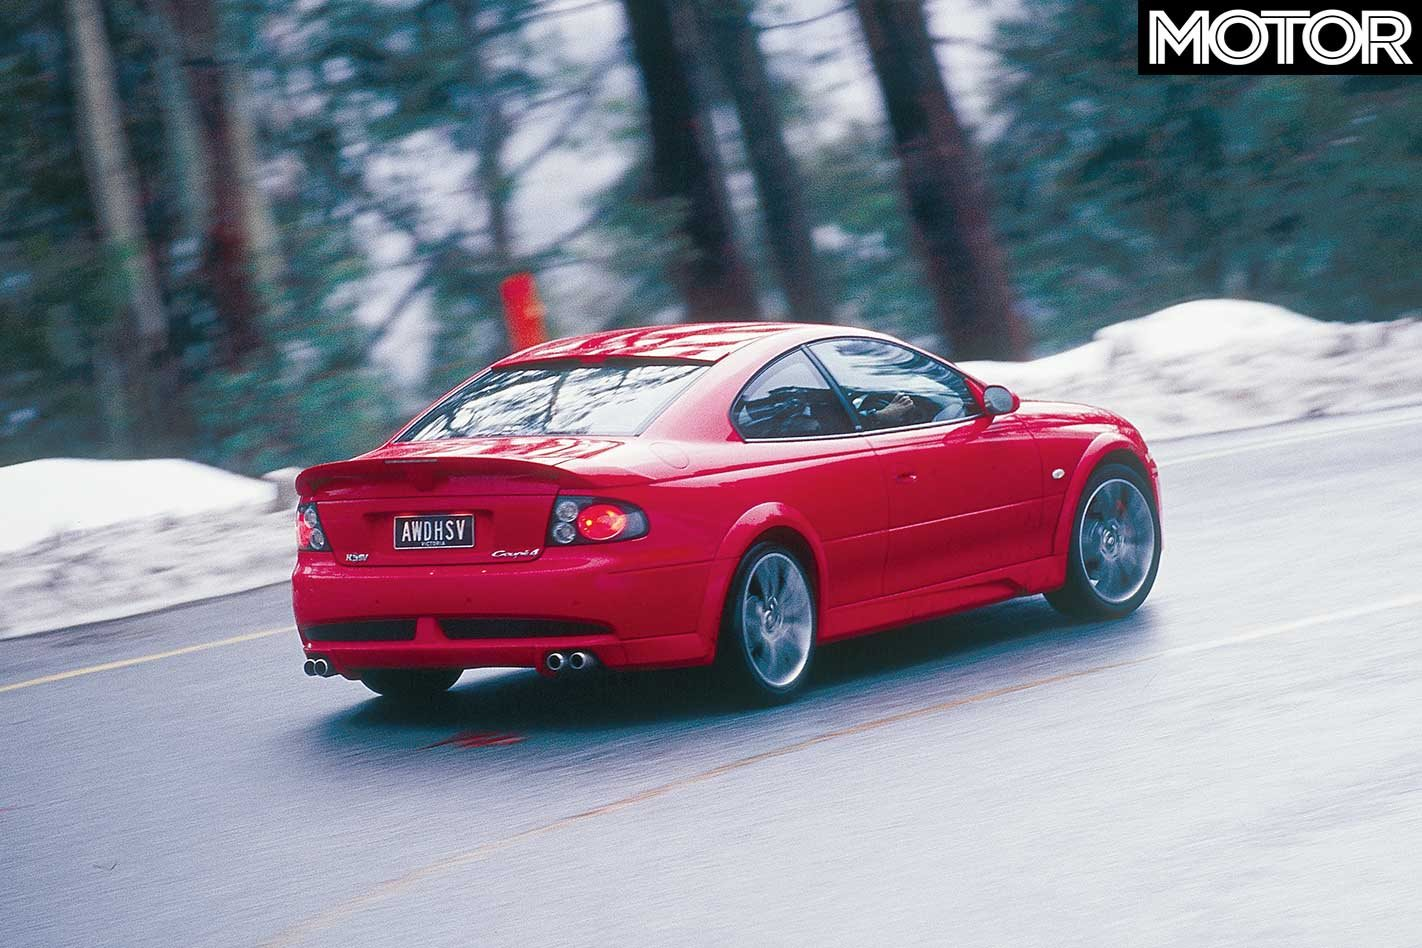 2004 HSV Coupe 4 performance review: classic MOTOR